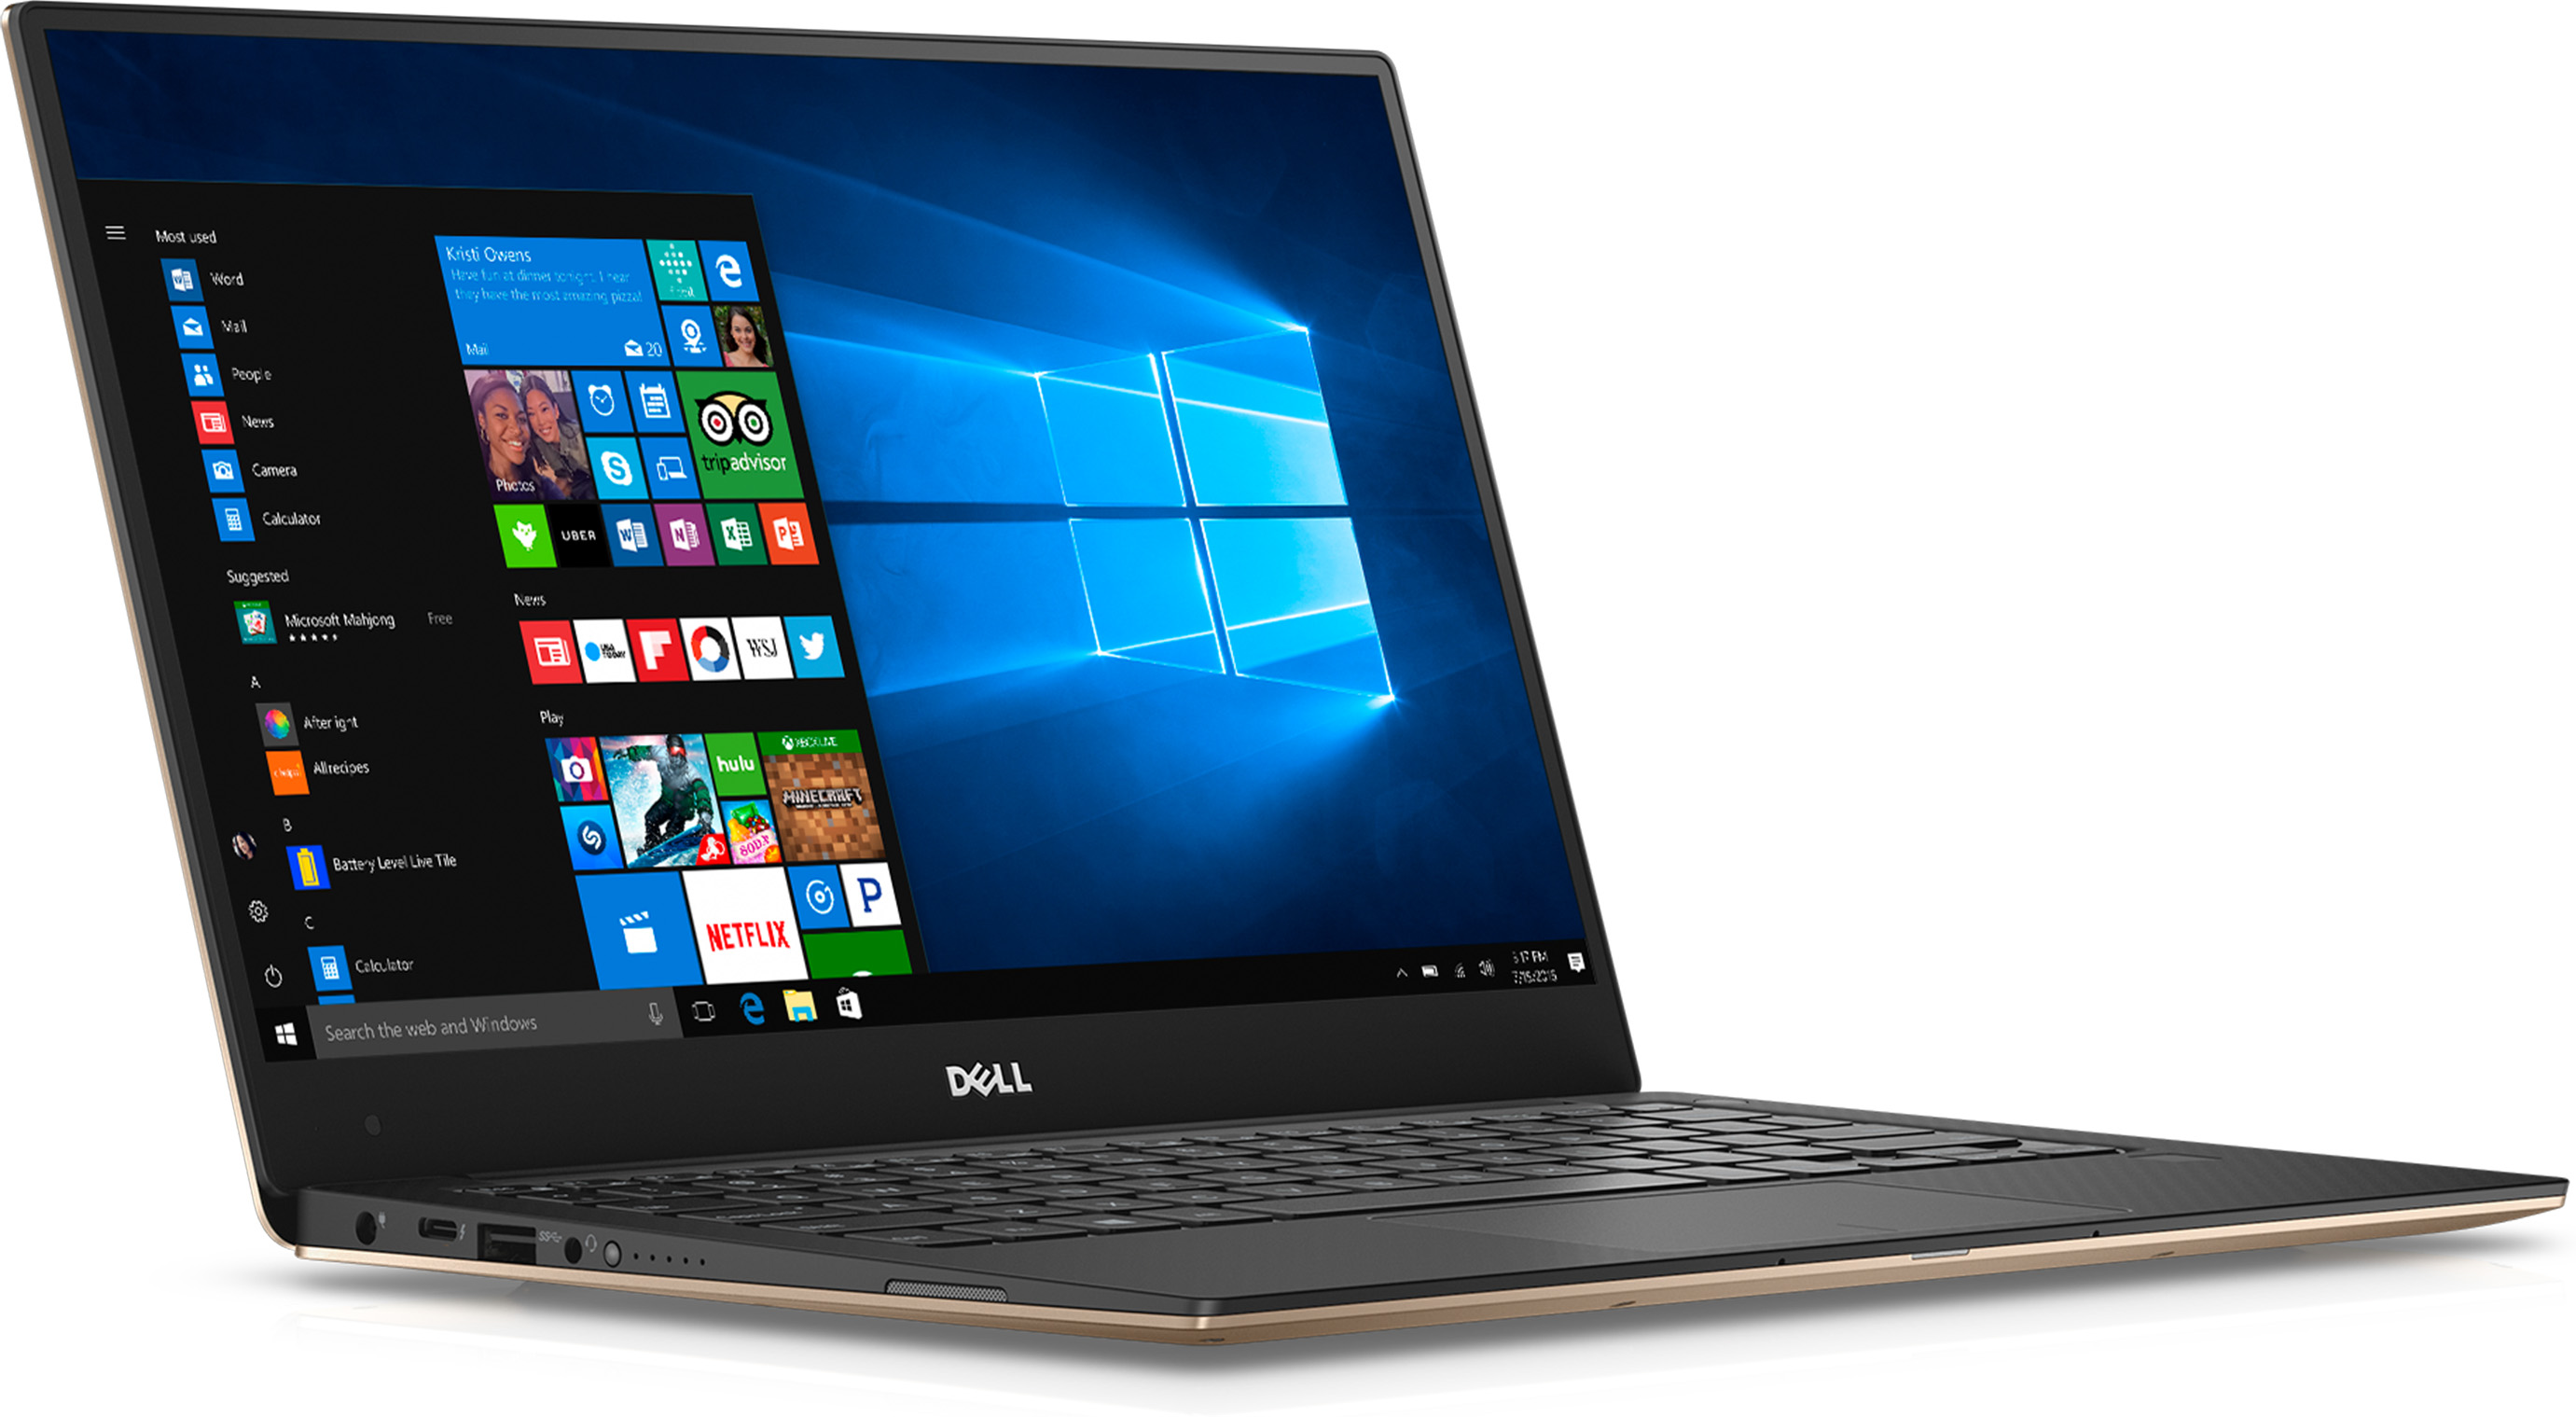 dell xps 13 laptop facing right